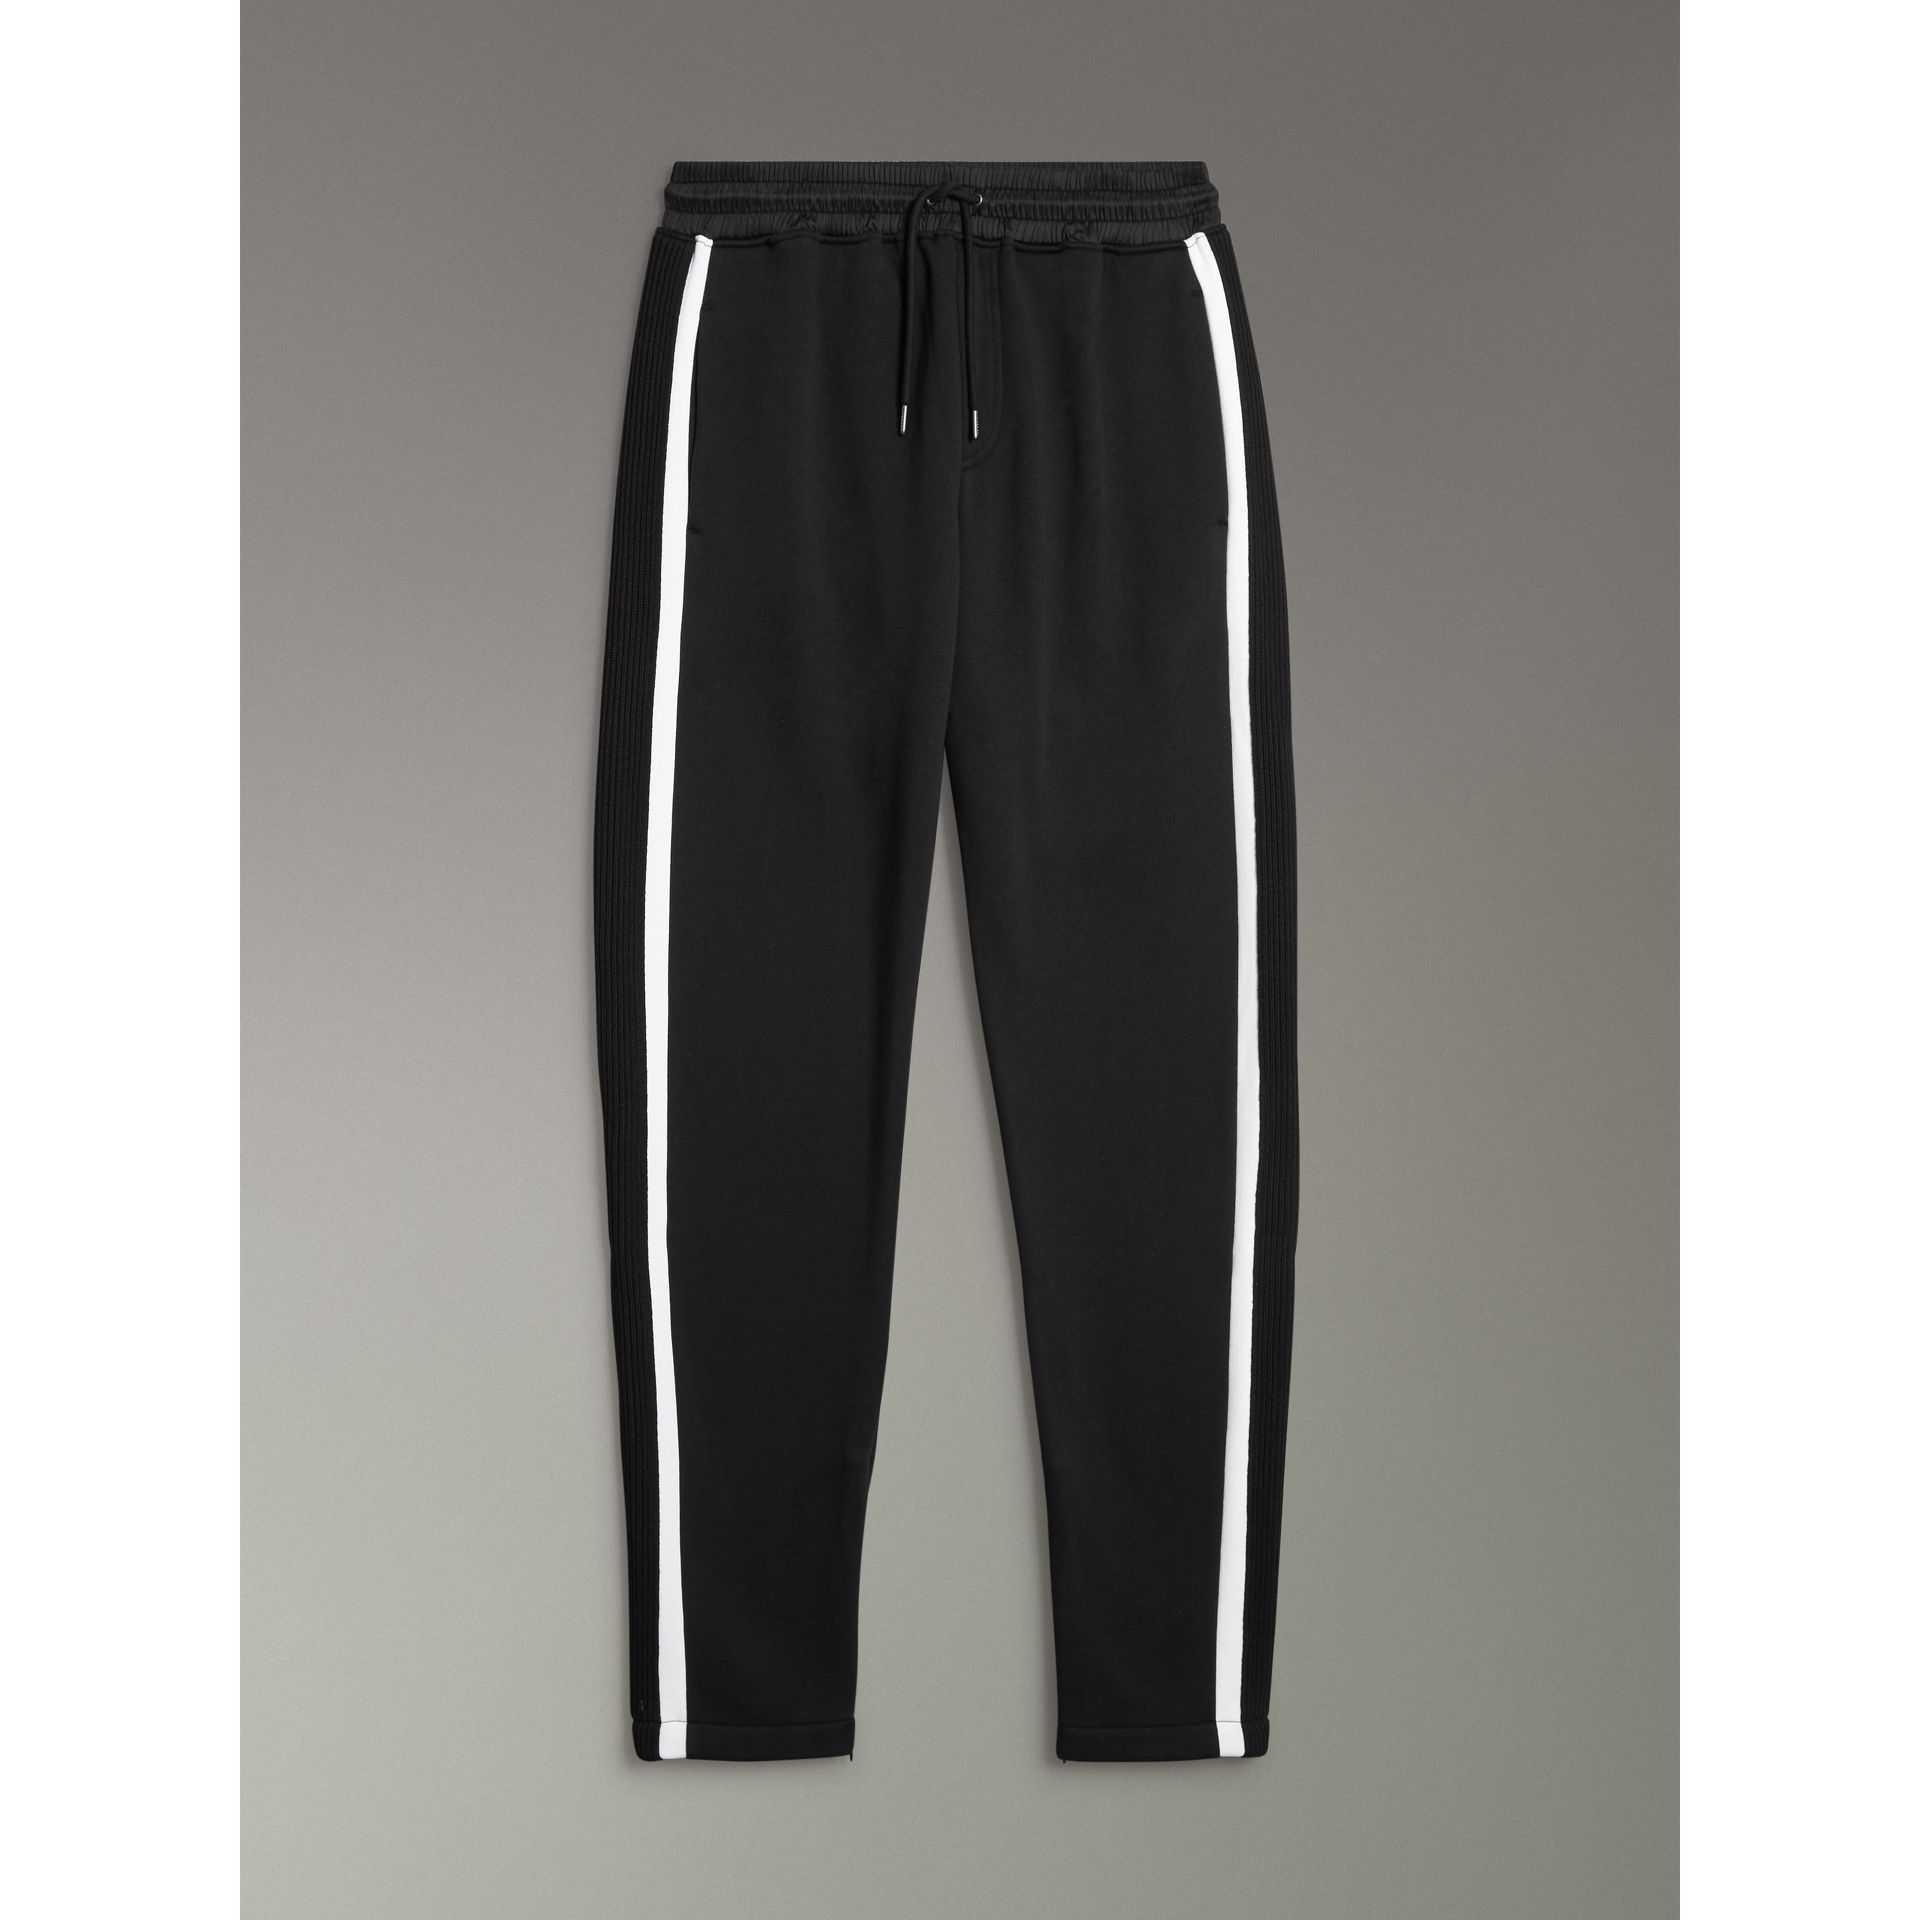 Stripe Detail Cotton Blend Jersey Sweatpants in Black - Men | Burberry United Kingdom - gallery image 3